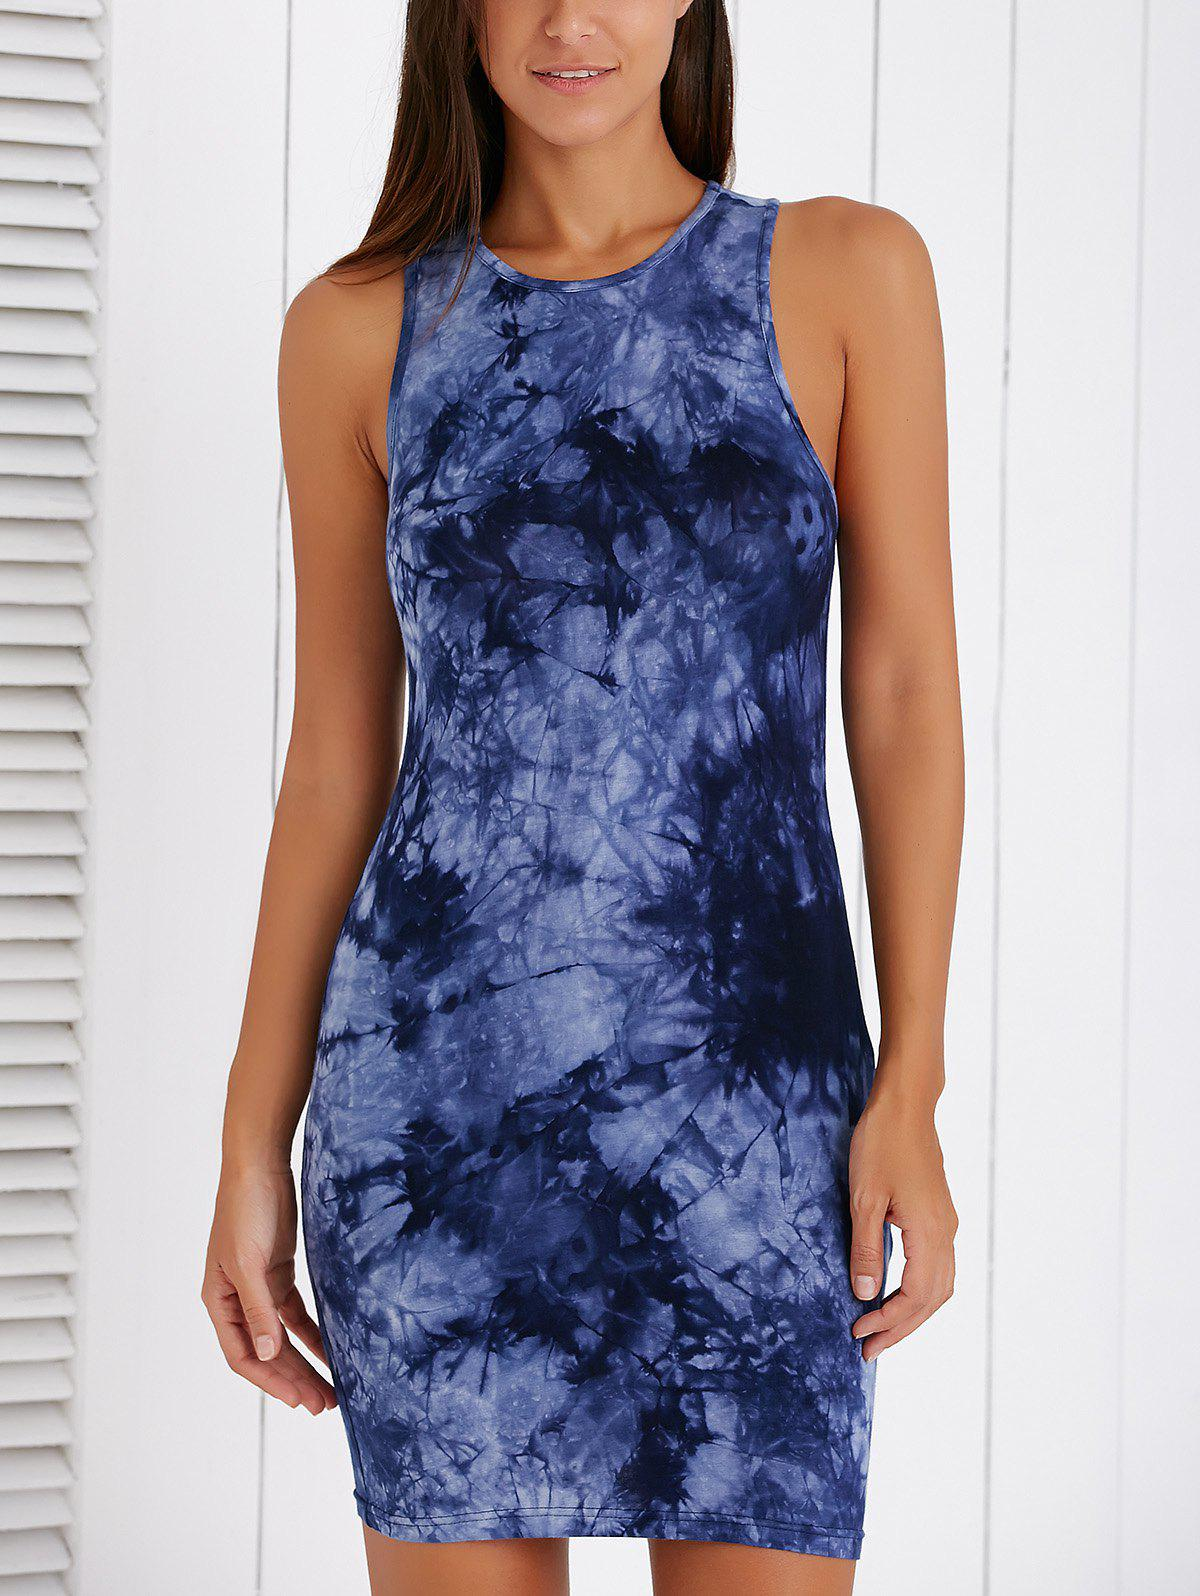 Fashionable Sleeveless Ink Painting Bodycon Dress - COLORMIX XL